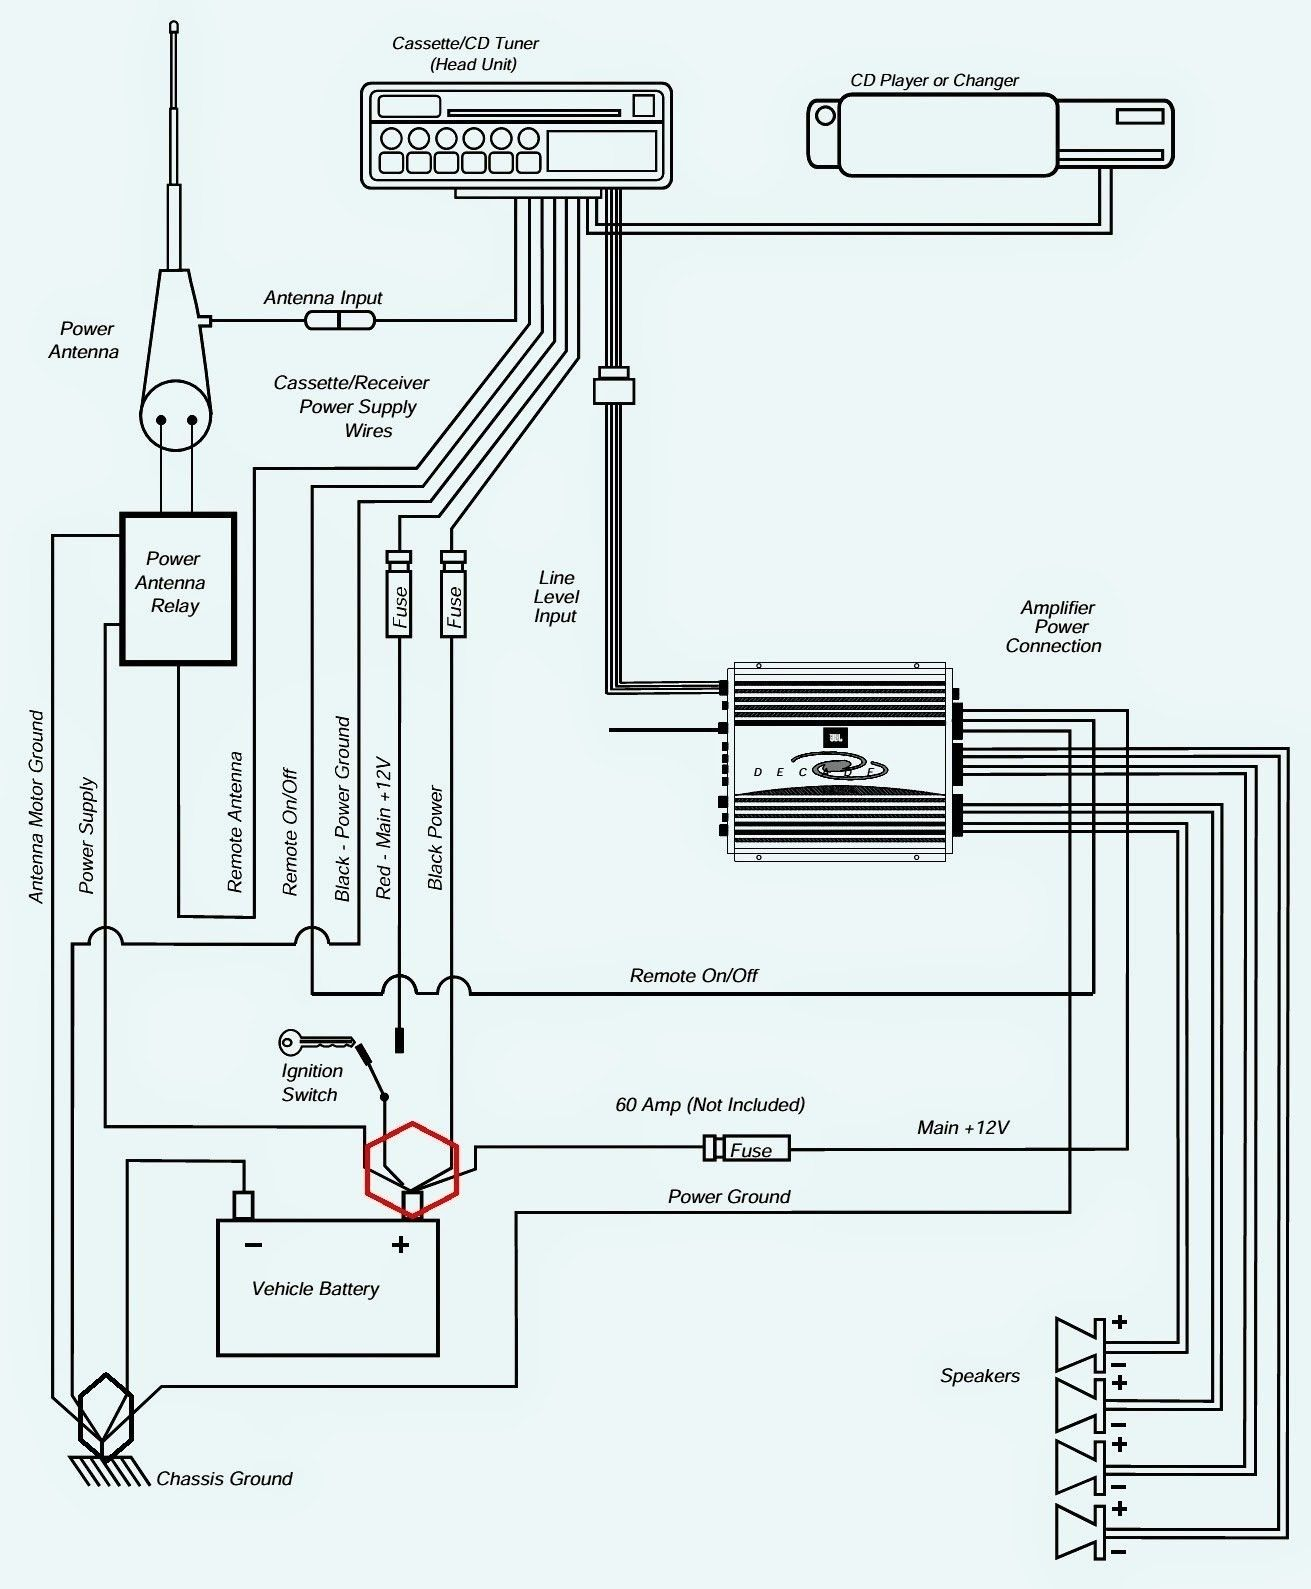 Car Stereo Power Amplifier Wiring Diagram